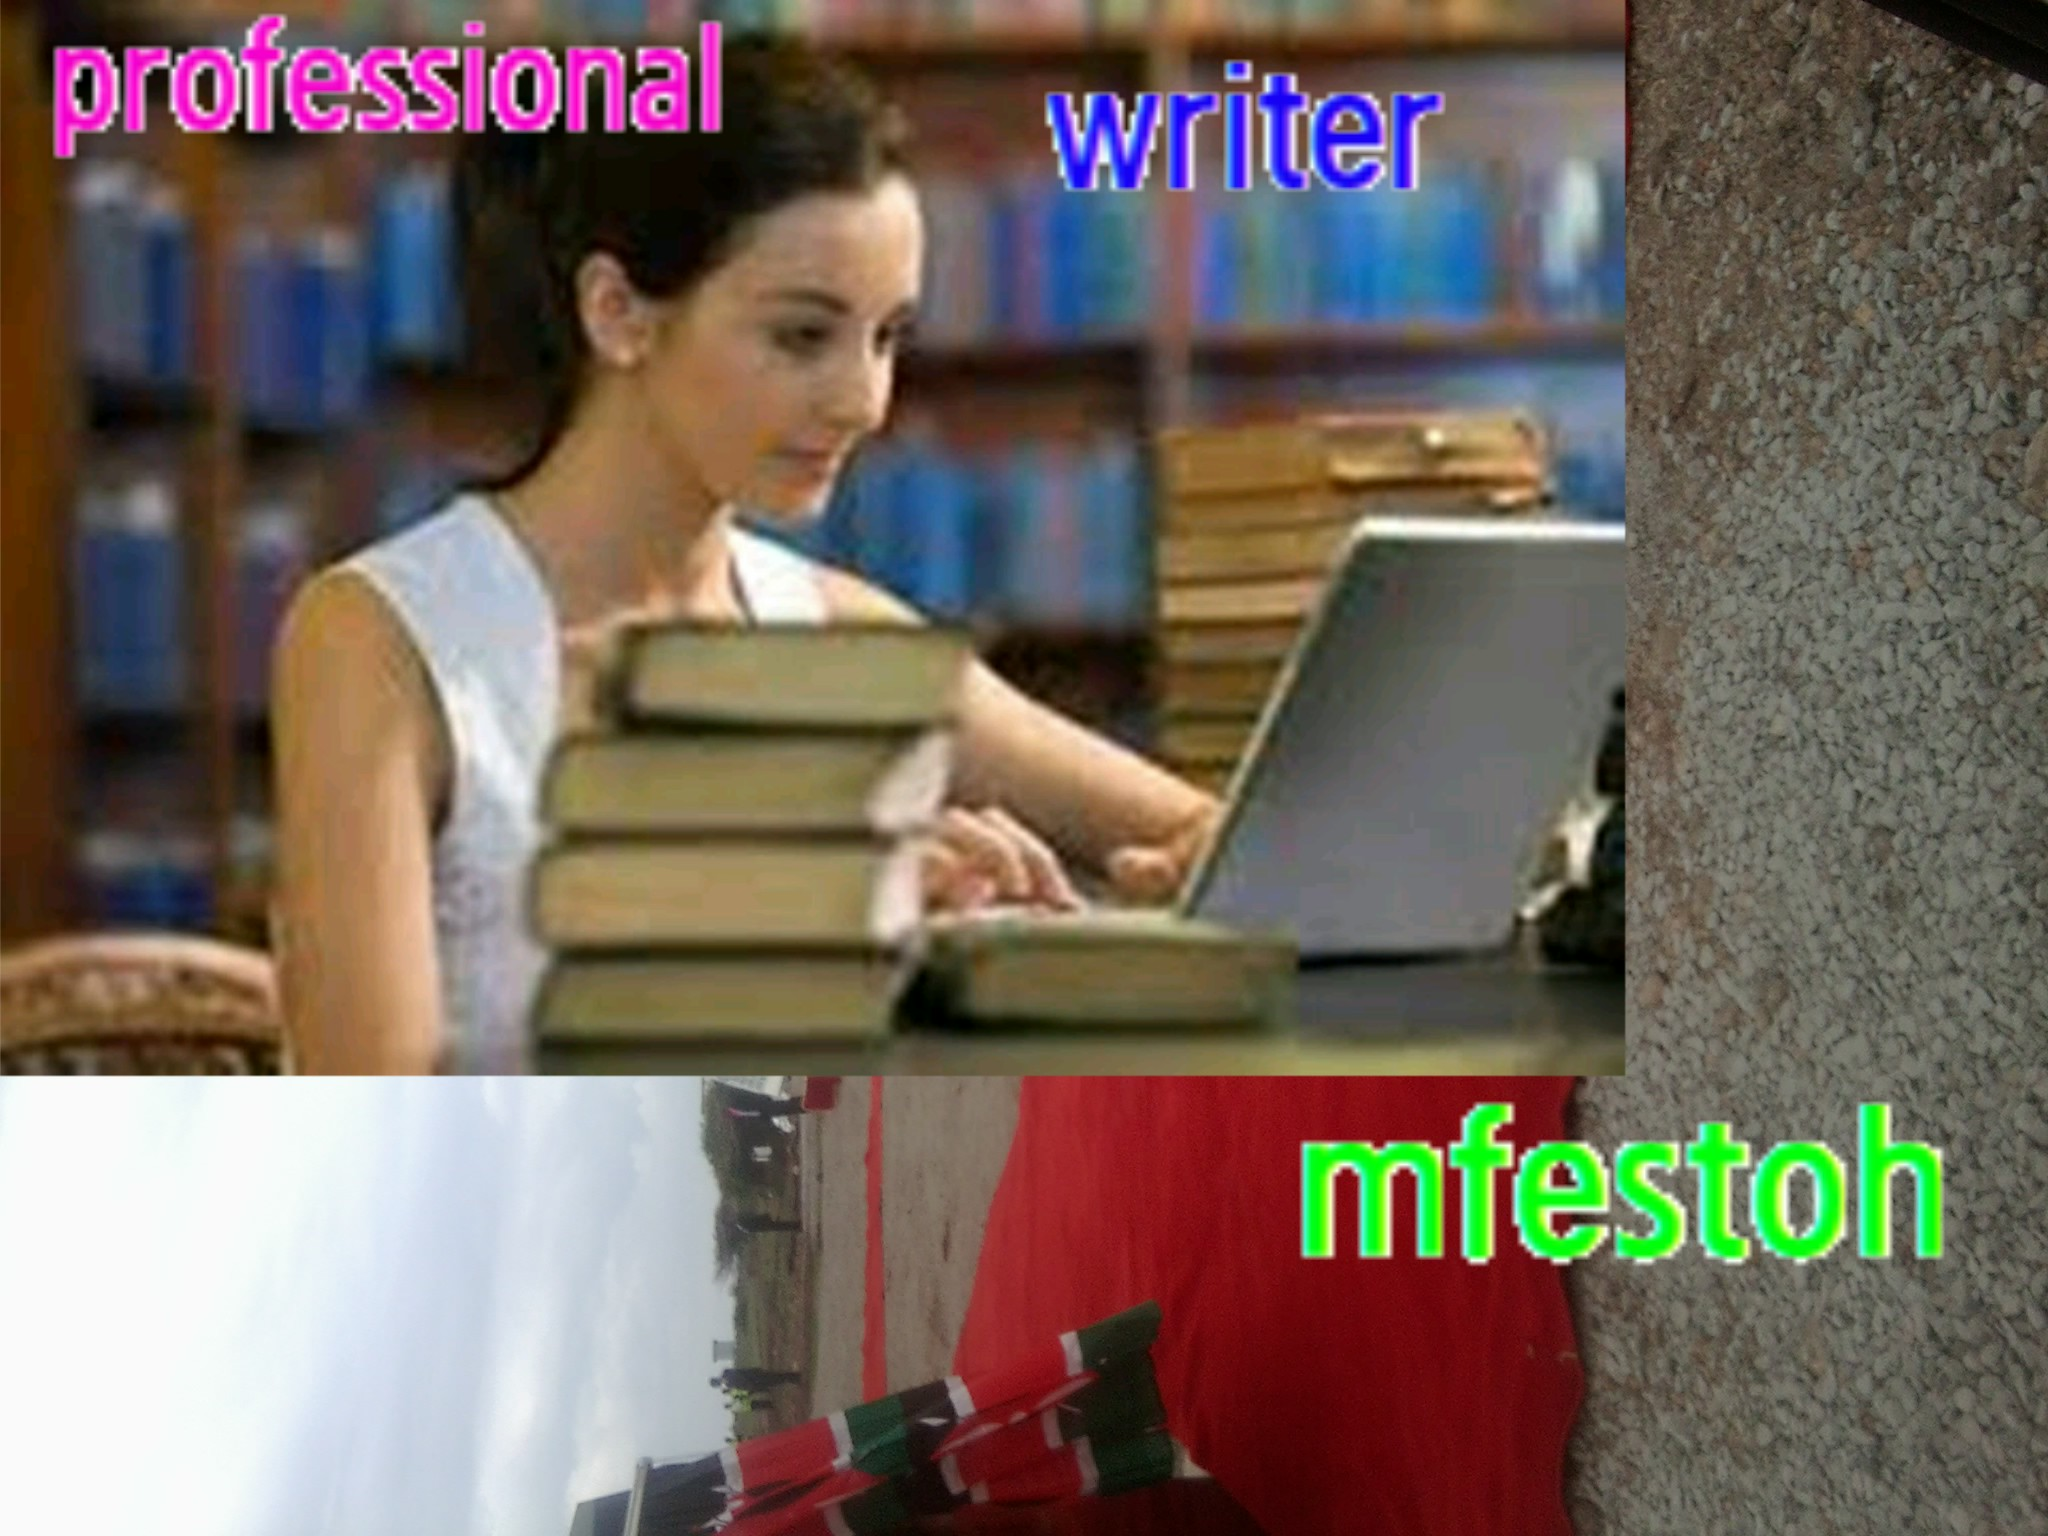 write a well researched, professional academic paper formatted in MLA, Chicago, Turabian, APA or Harvard